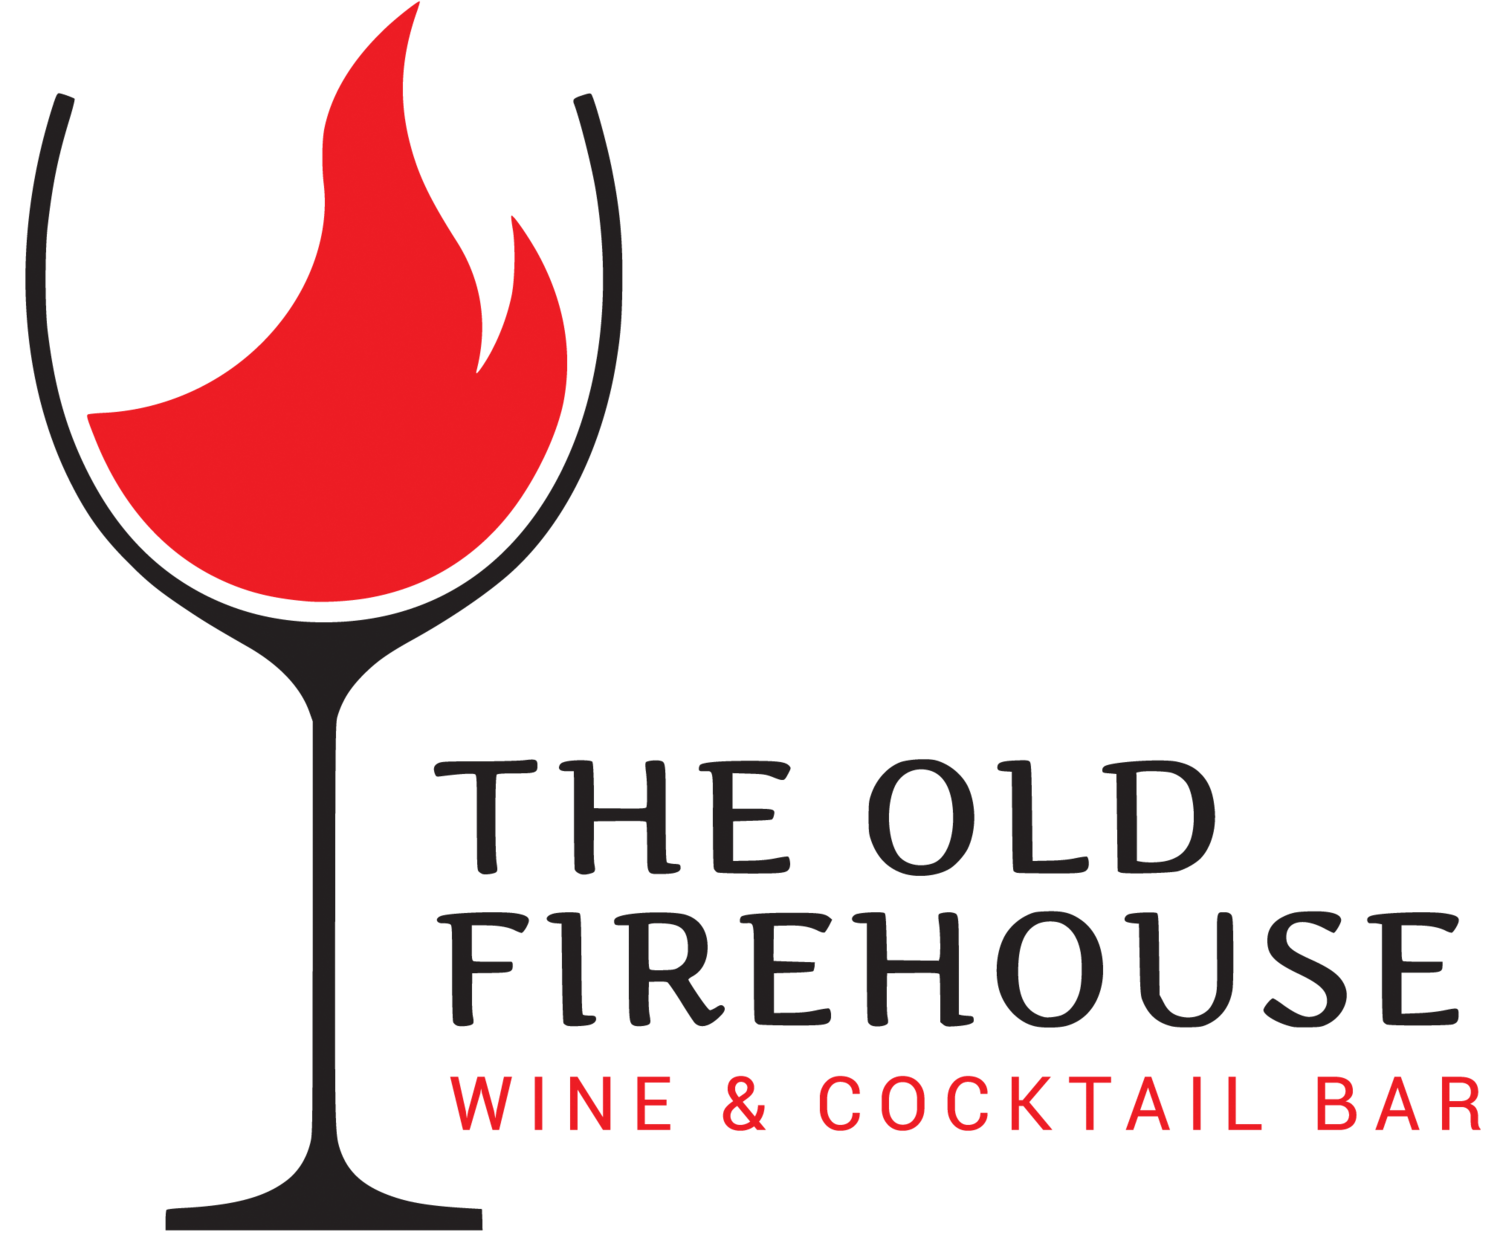 Old Firehouse Wine & Cocktail Bar The logo